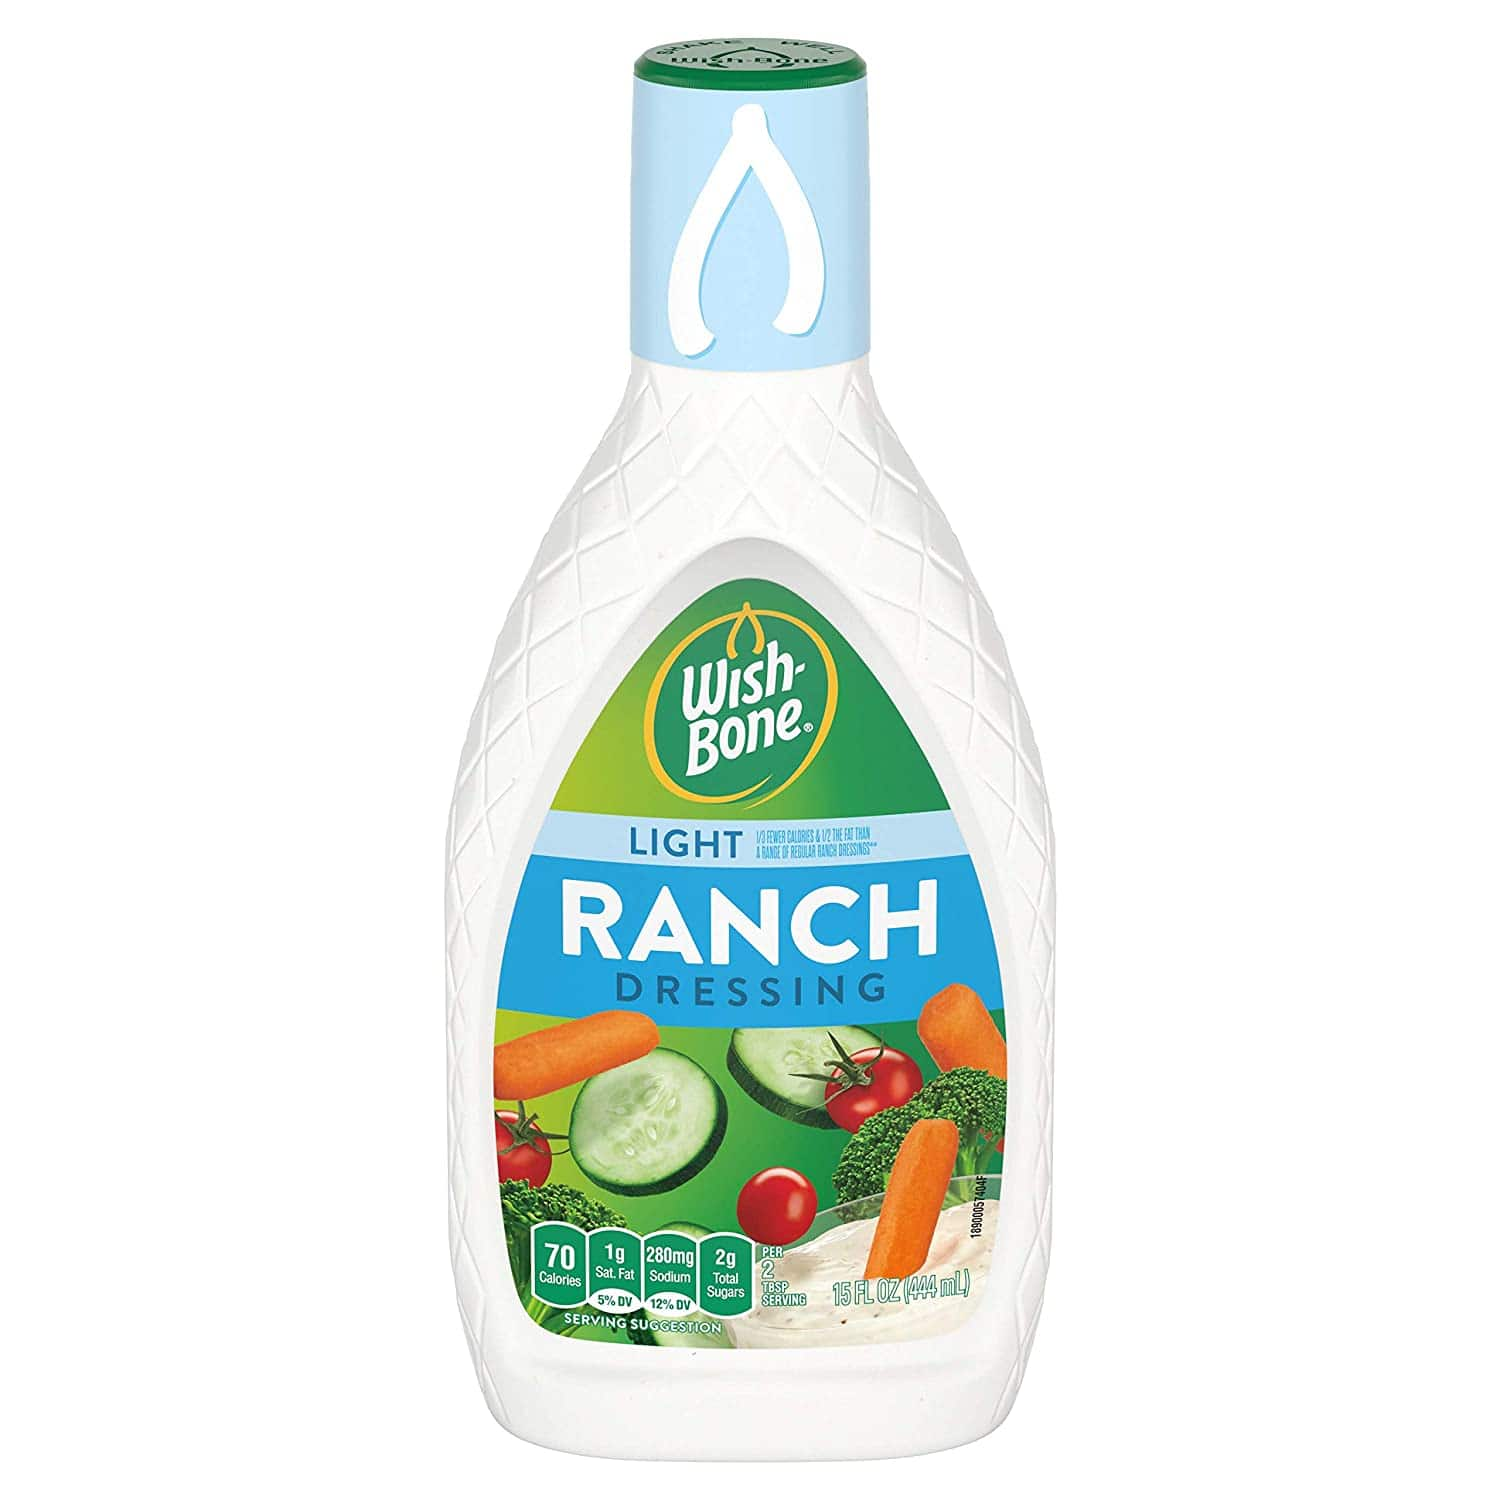 Wish-Bone 15oz Salad Dressings: Light Ranch $1.68, Creamy Caesar or Ranch $1.70 & More - FS w/ S&S